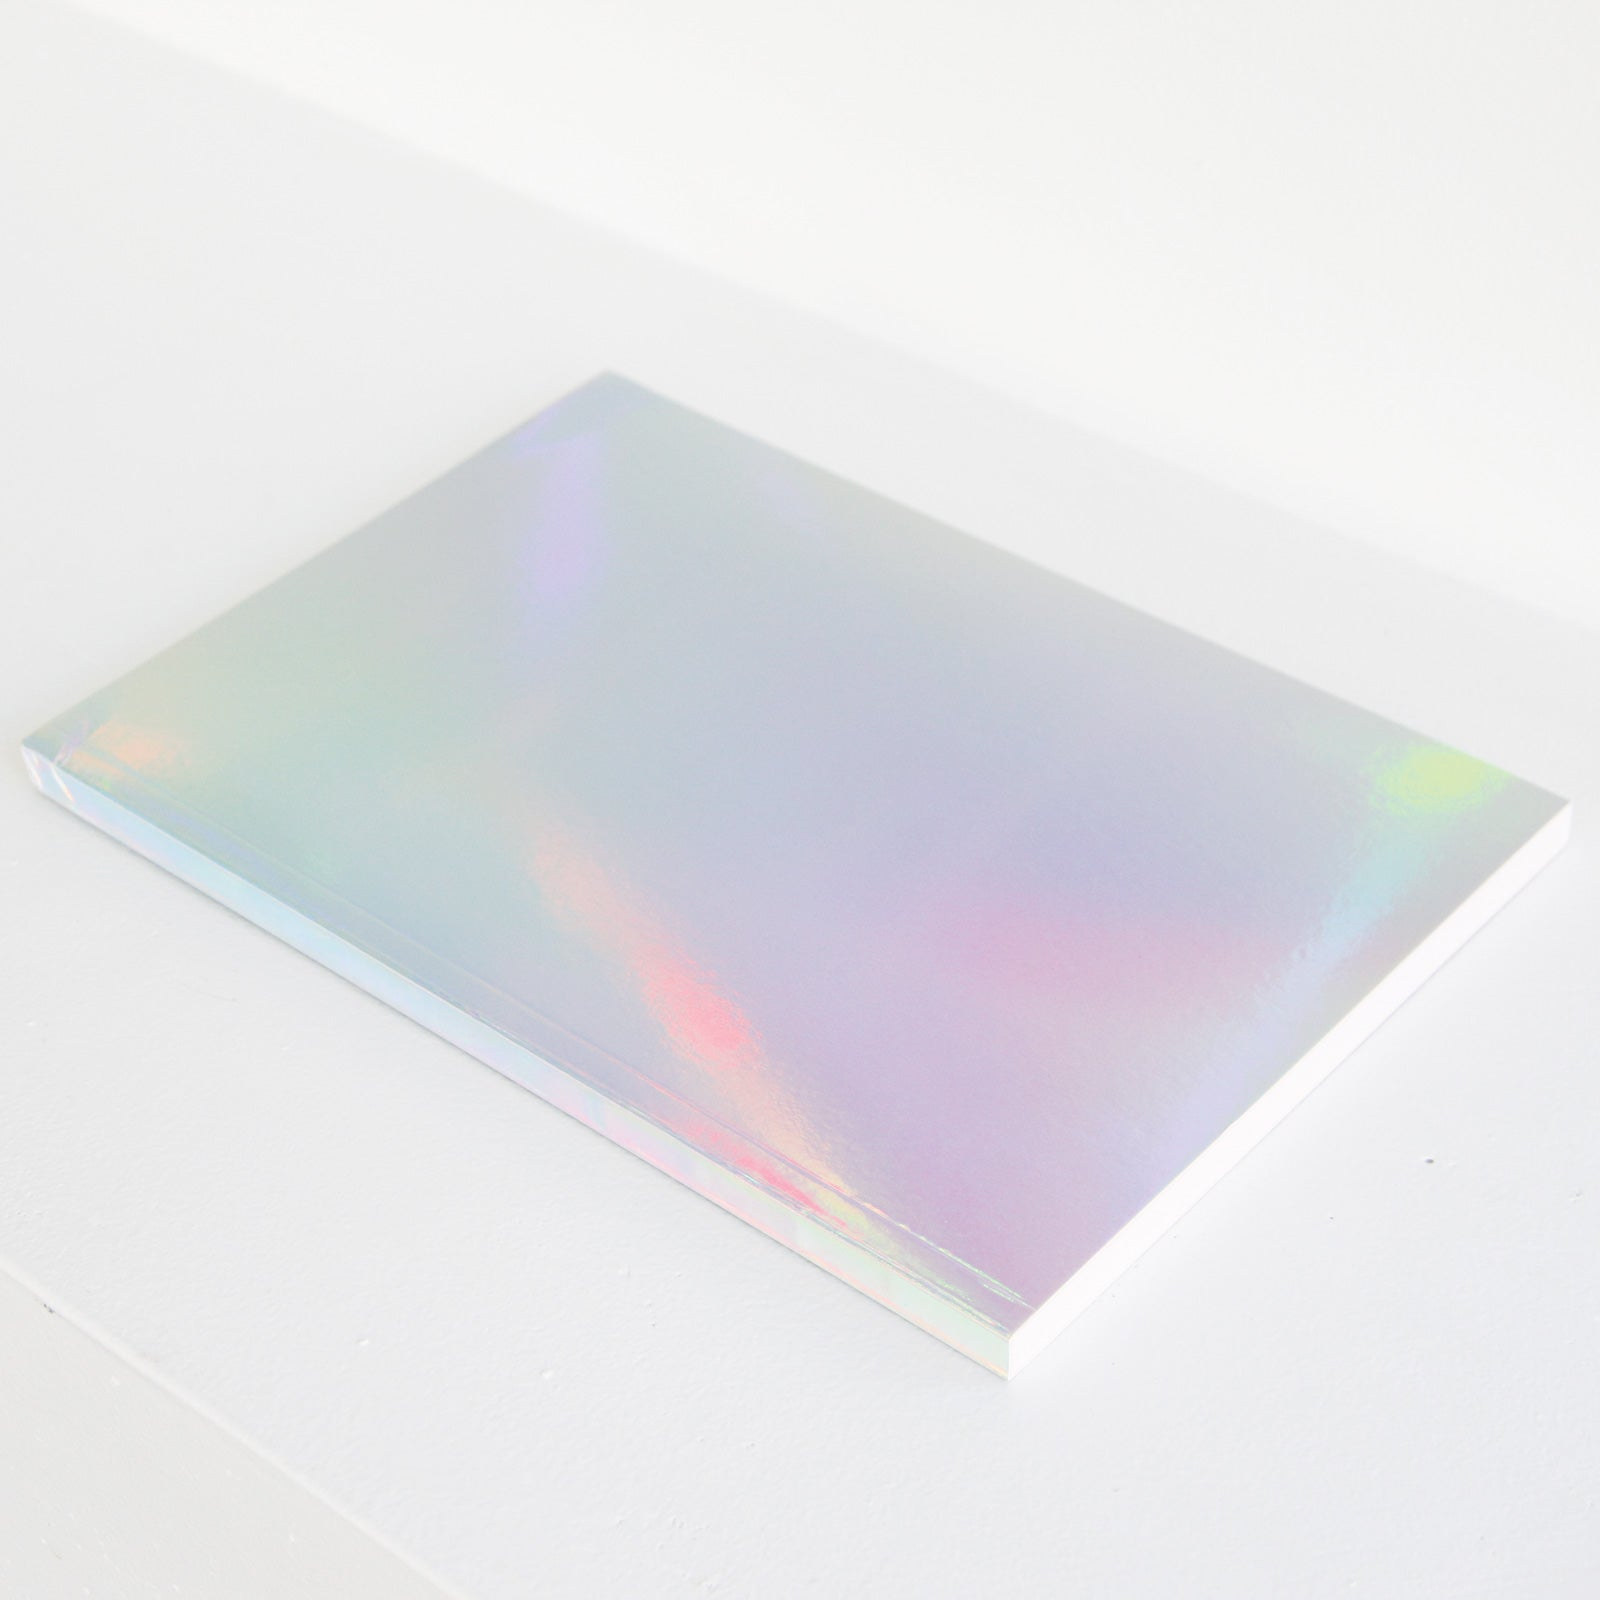 Holographic Notebook | Poketo | Los Angeles, CA at Sustain - Gallery and Shop - Chicago, IL